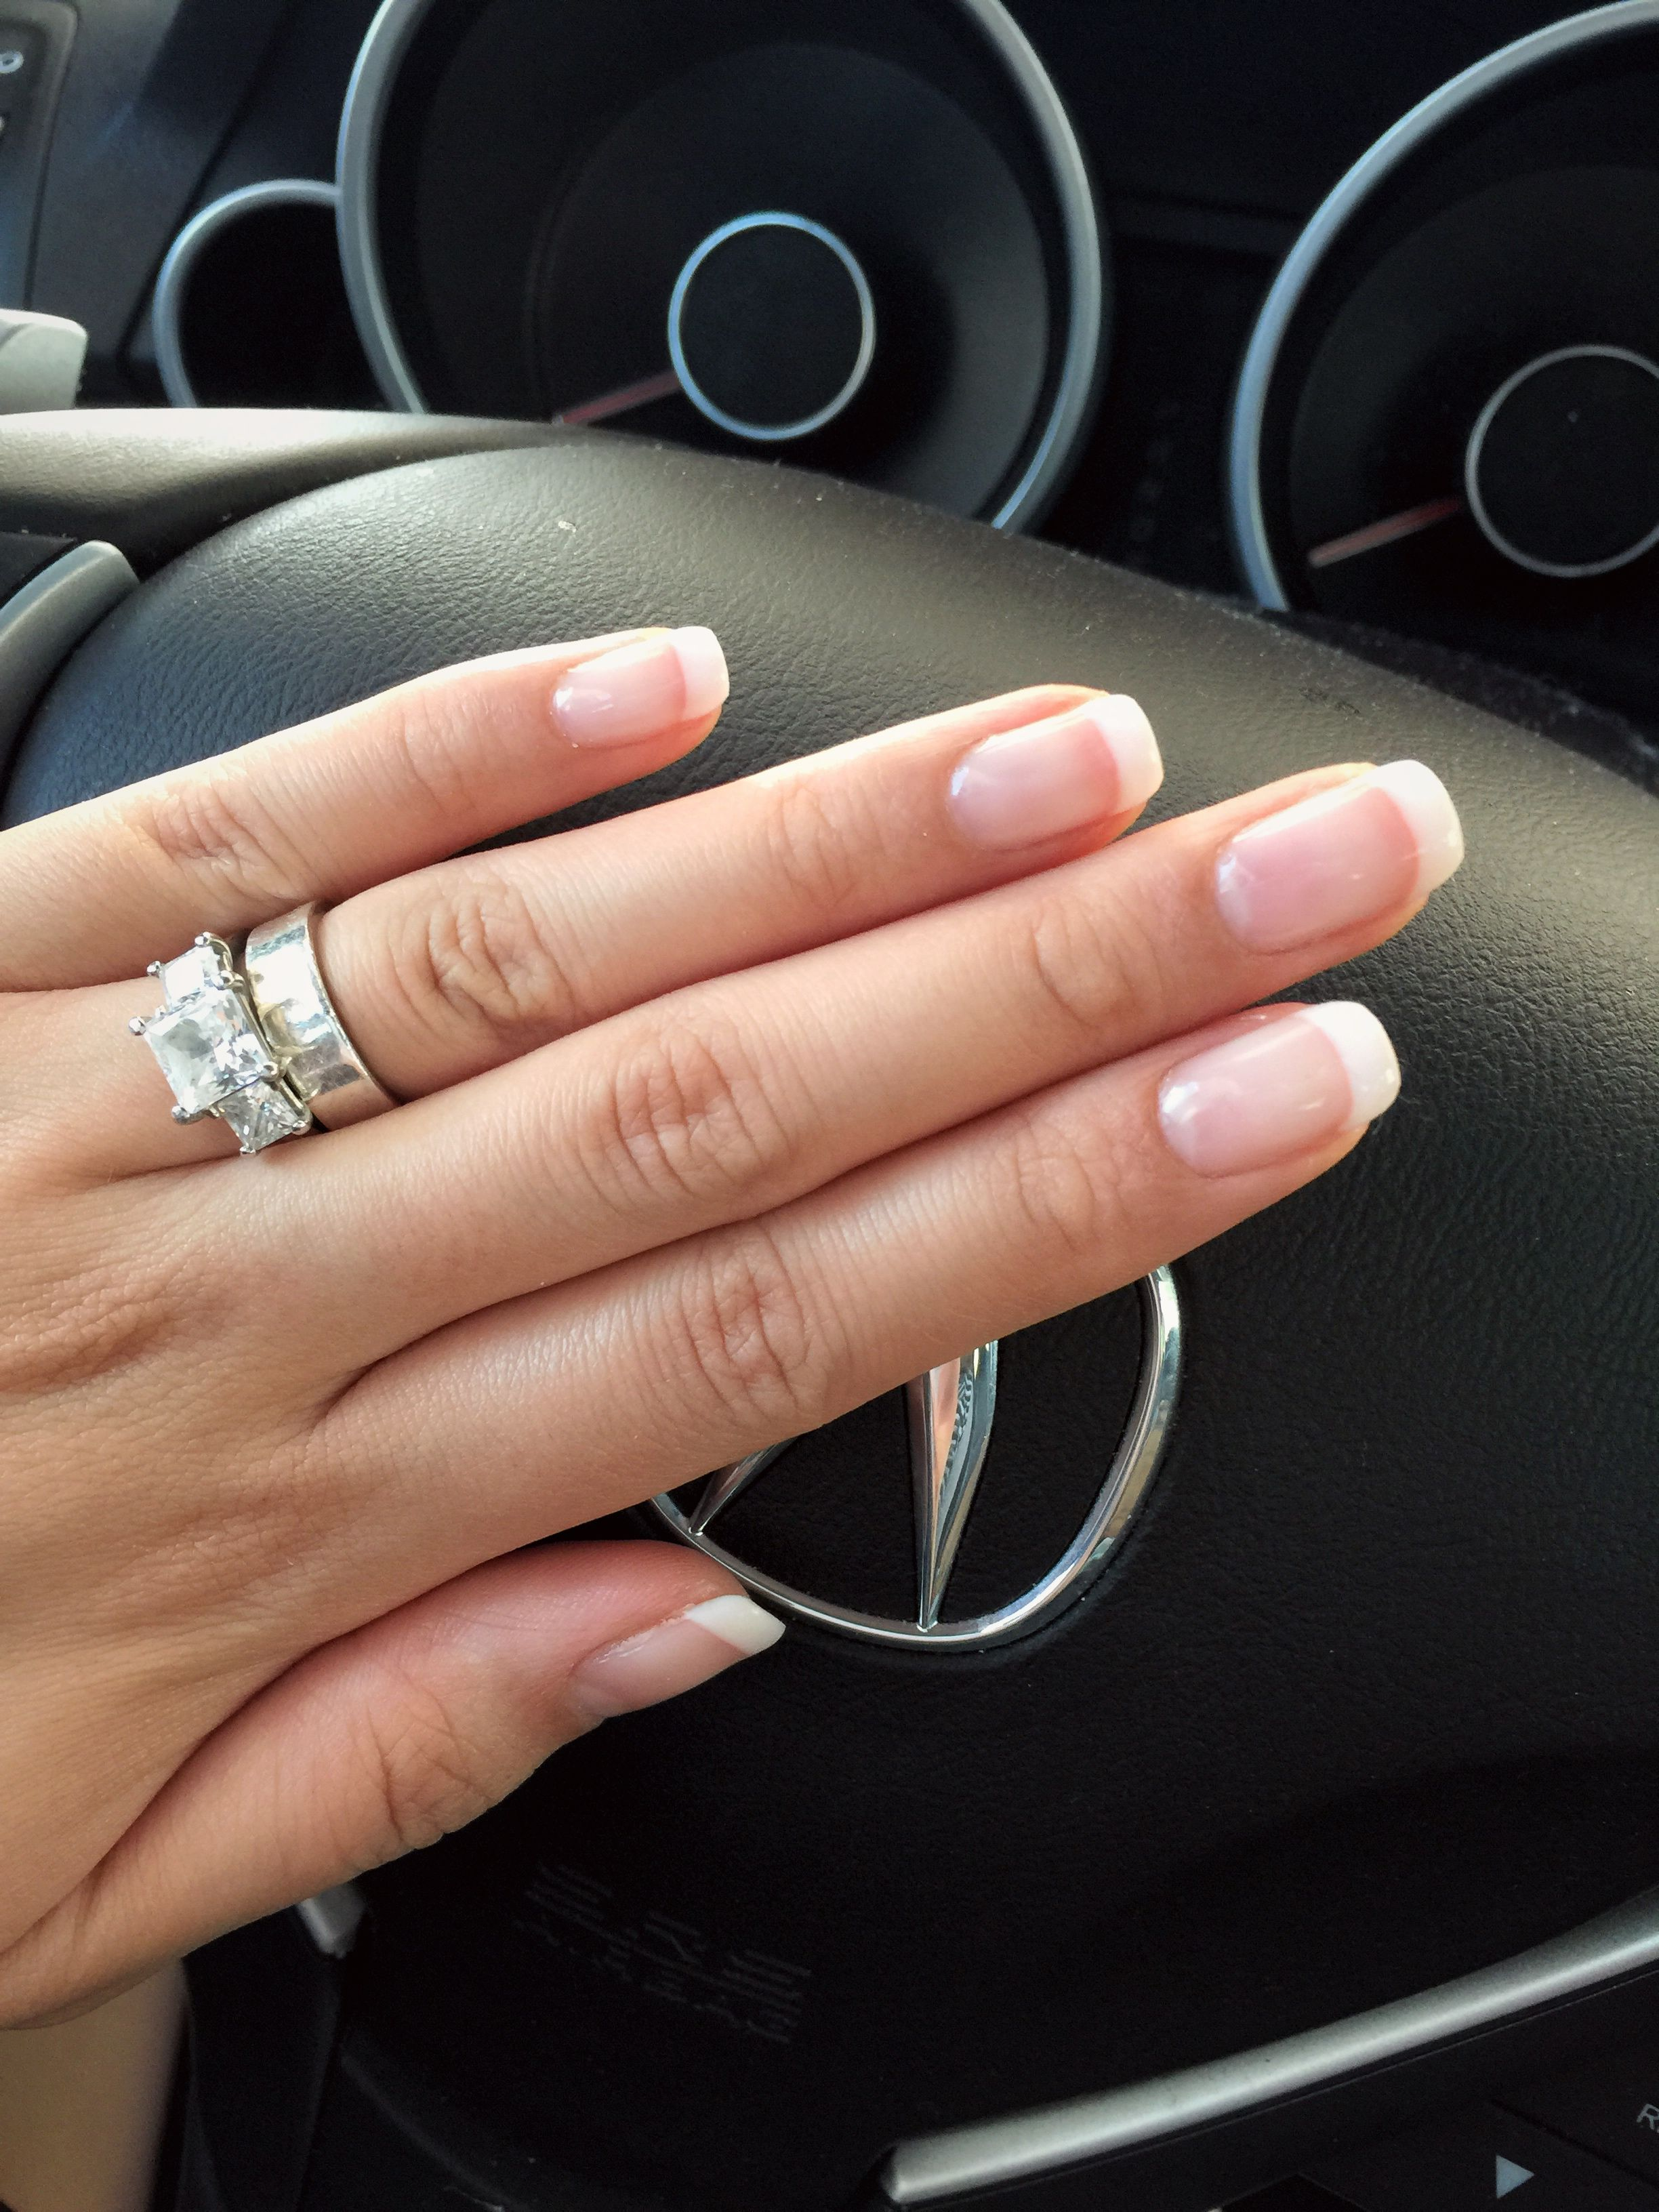 My American French Manicure - \'Squarely Round\' Shaping | Hair ...